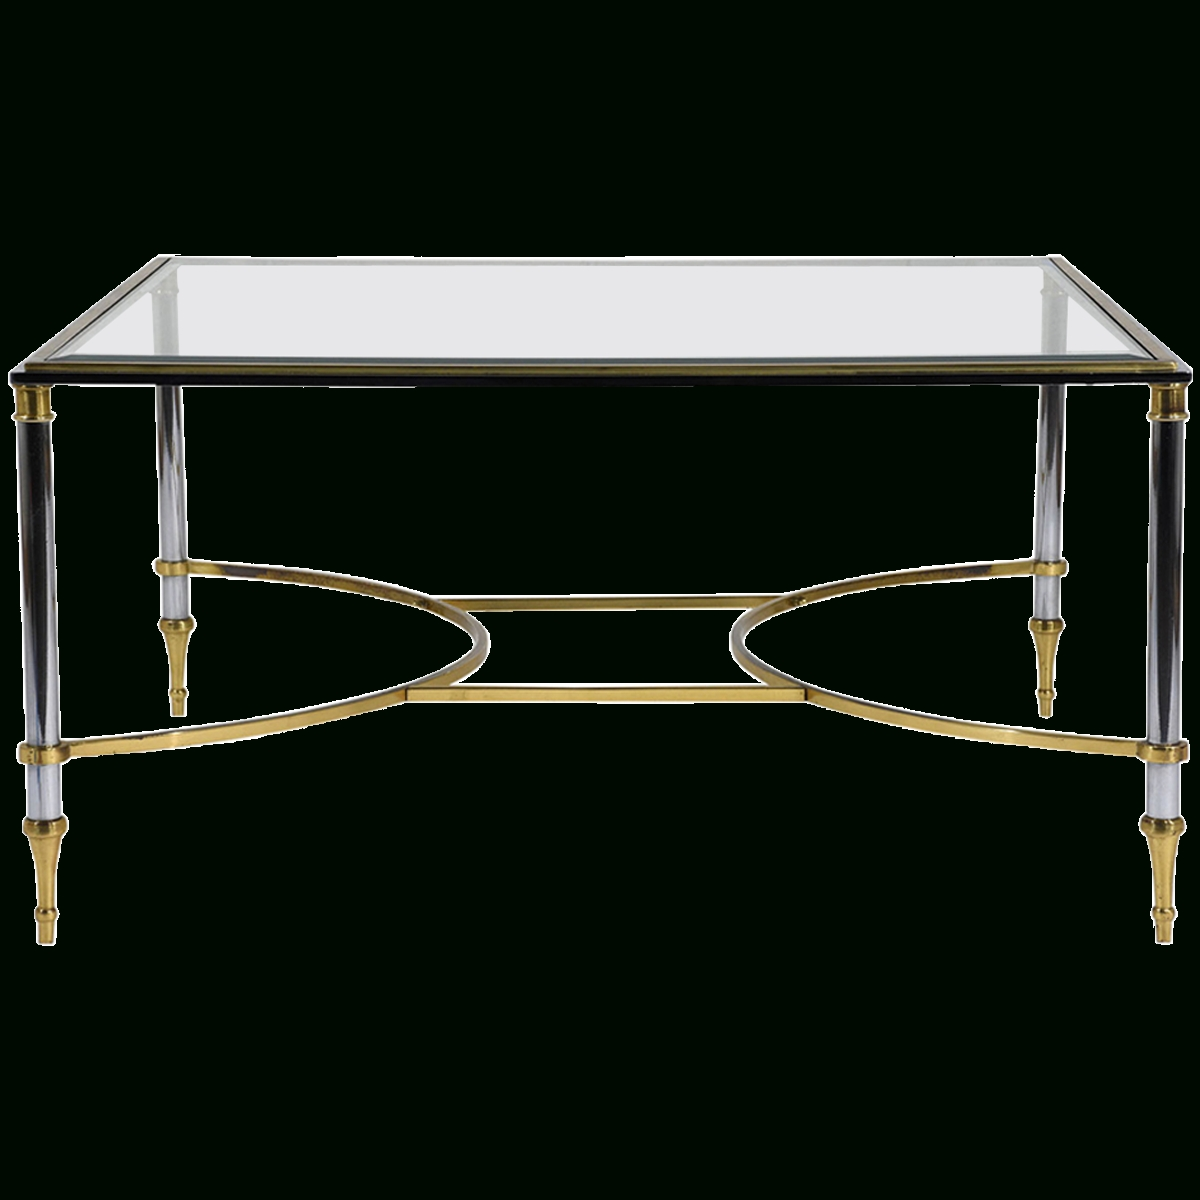 Viyet – Designer Furniture – Tables – Vintage Jansen Style Chrome Regarding Chrome And Glass Coffee Tables (View 30 of 30)